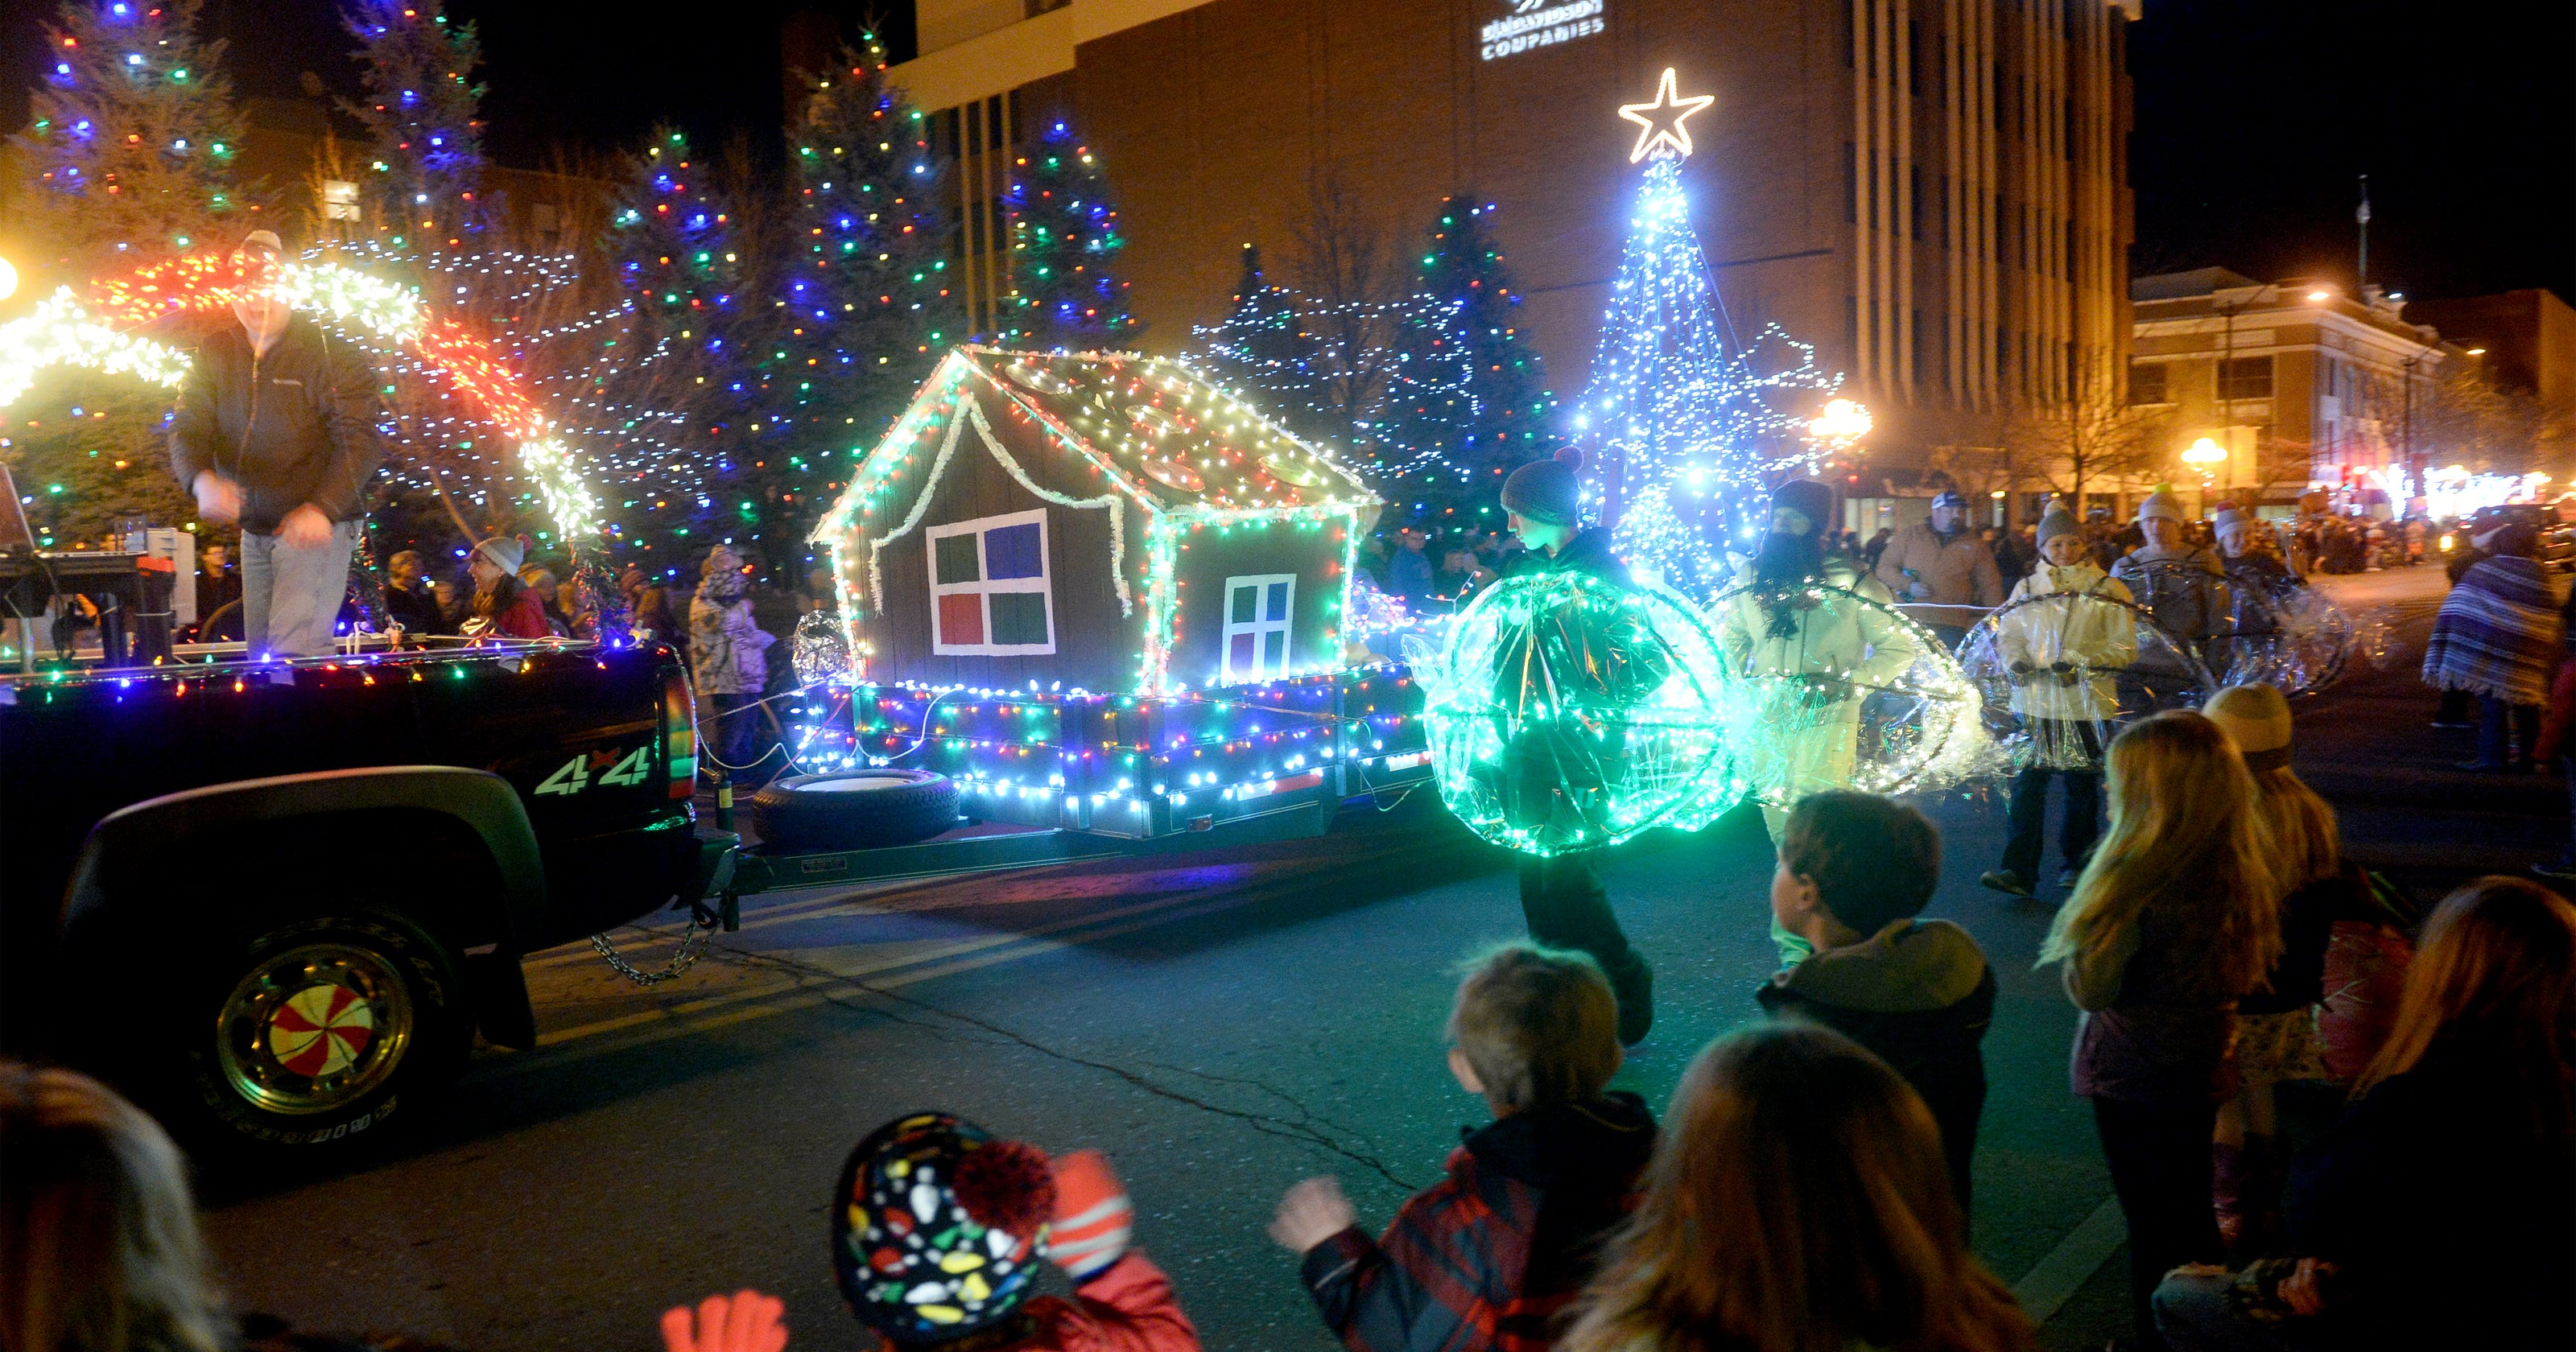 Holiday events get rolling this weekend with Parade of Lights